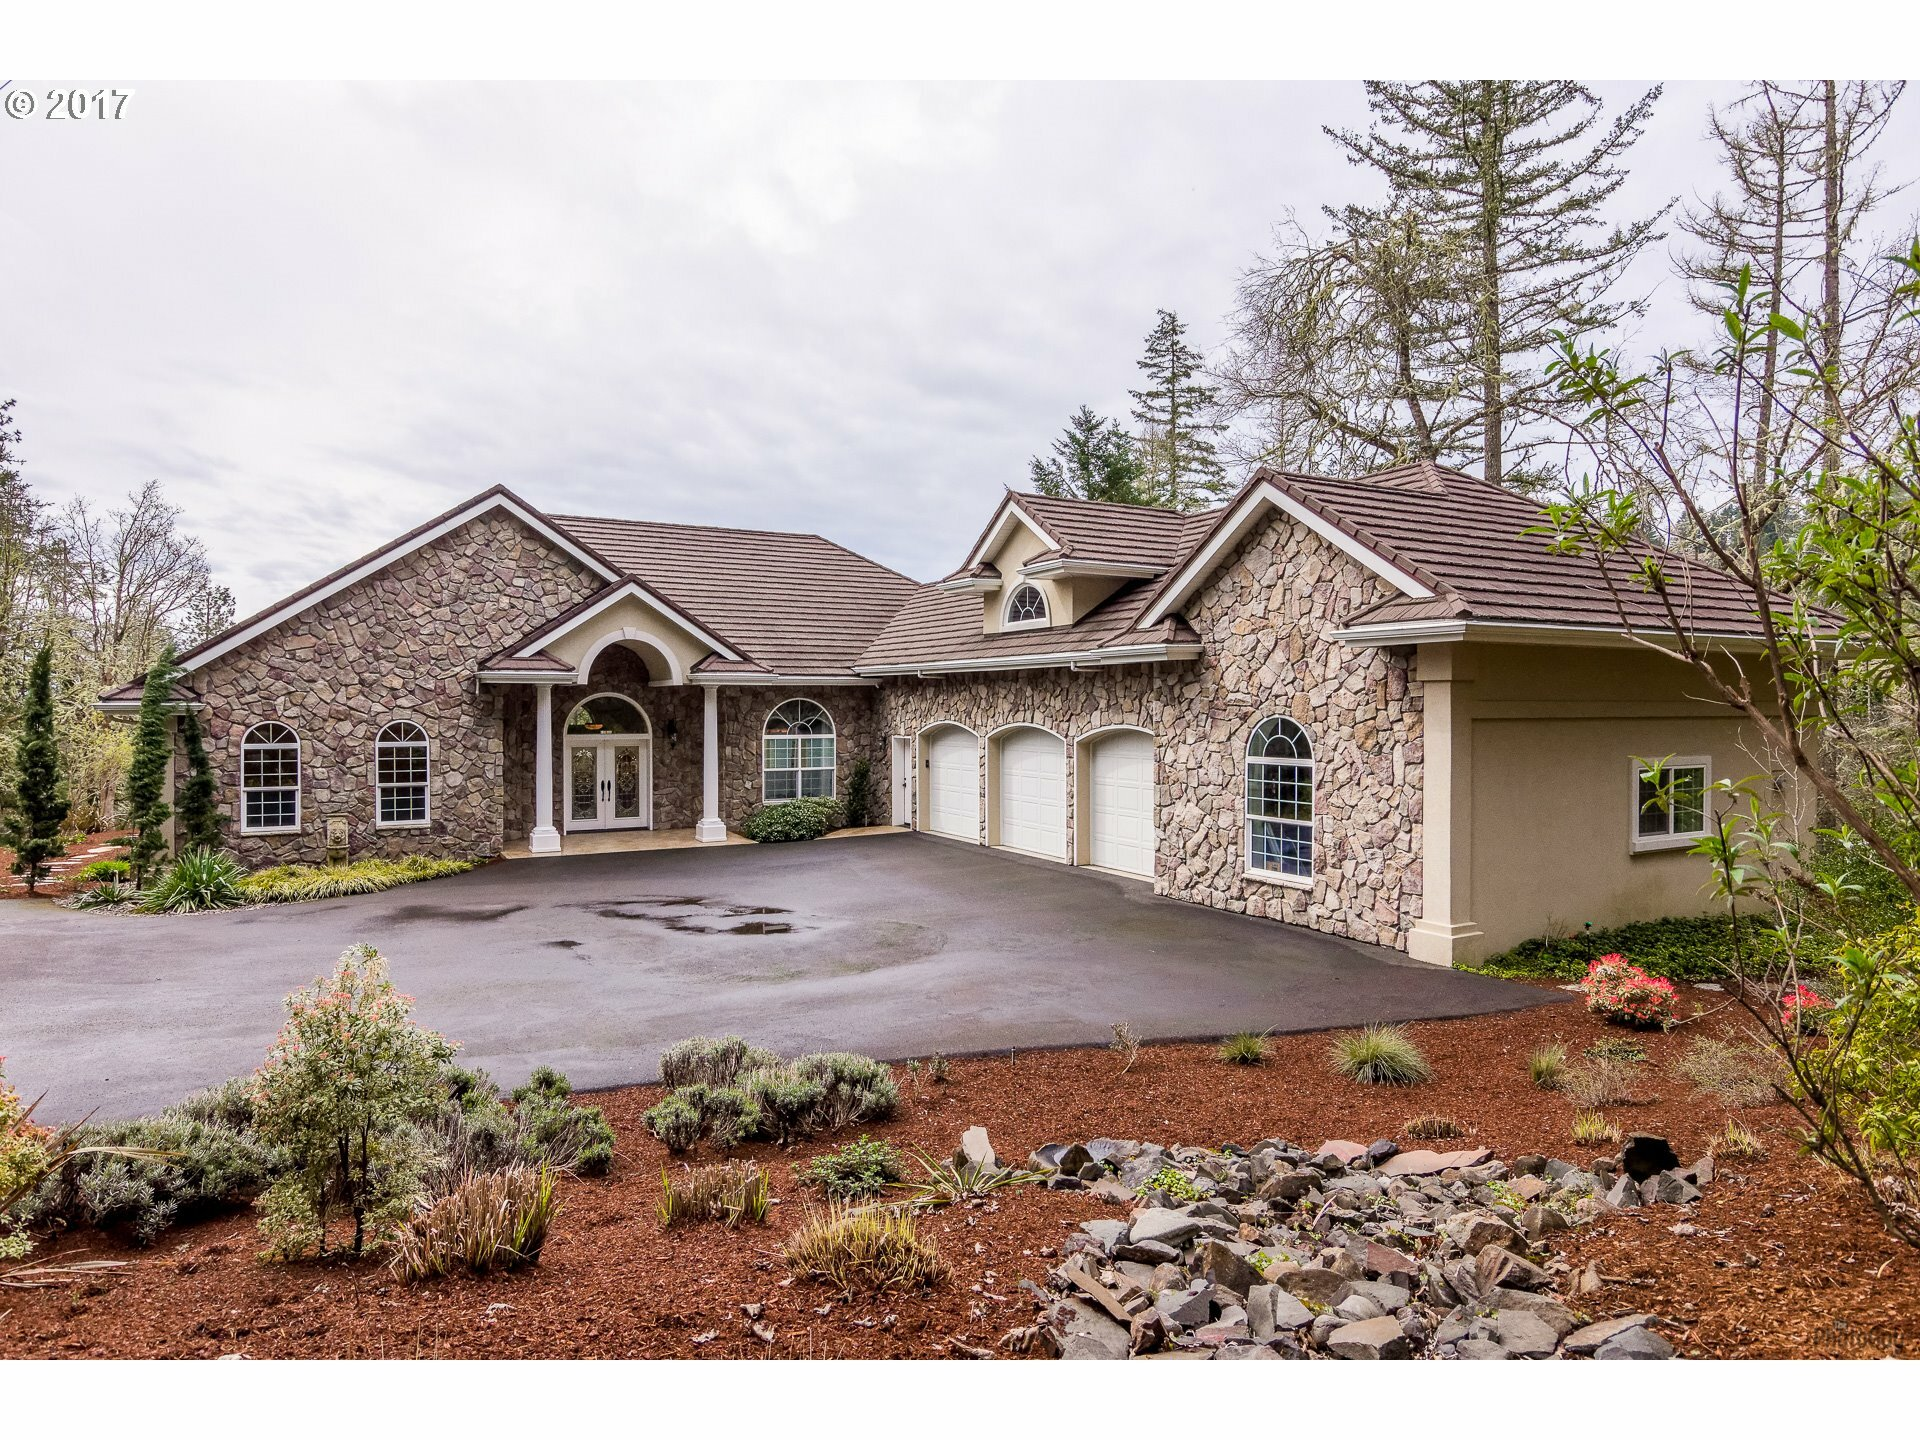 32825 Kestrel Ln, Eugene, OR - USA (photo 1)